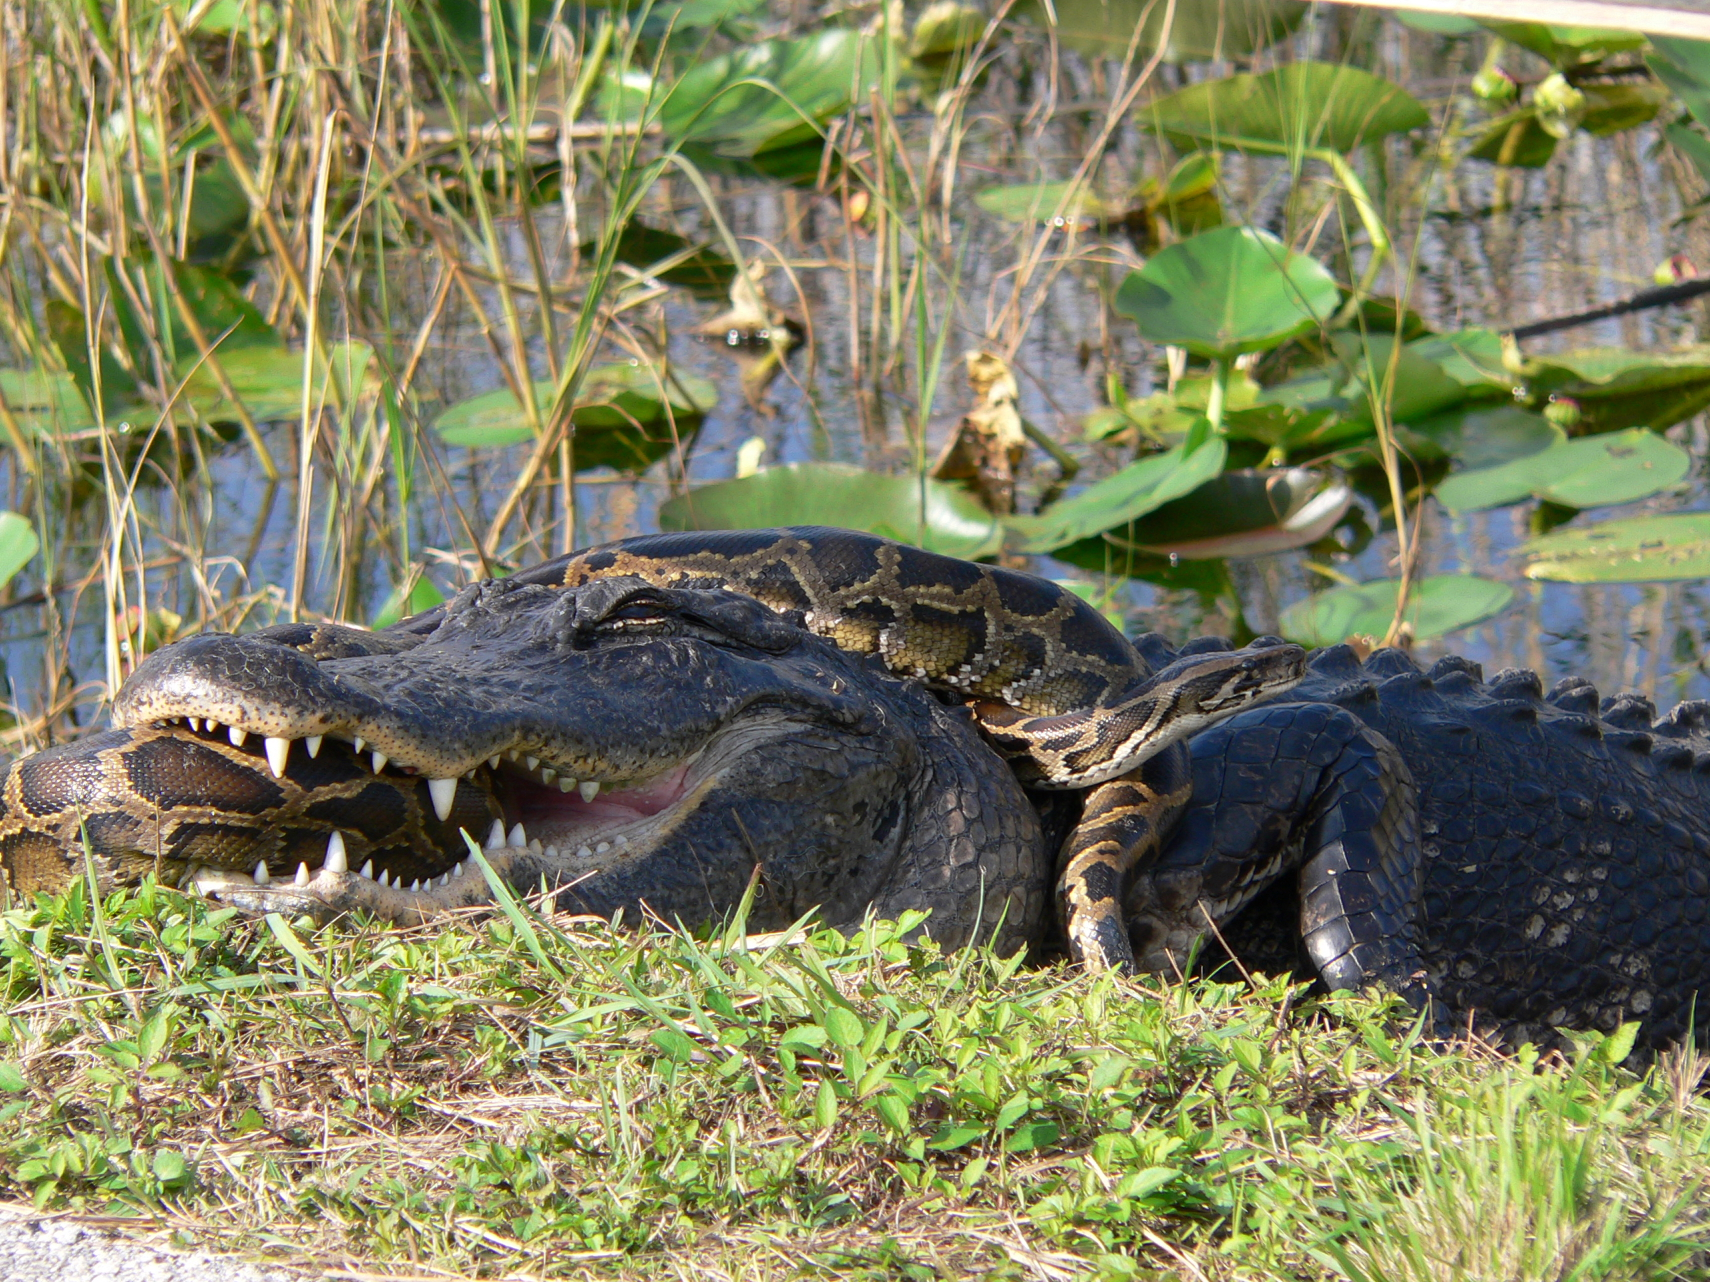 ark grey alligator and dark brown snake fight in grass and water, snake clutched in gator's mouth